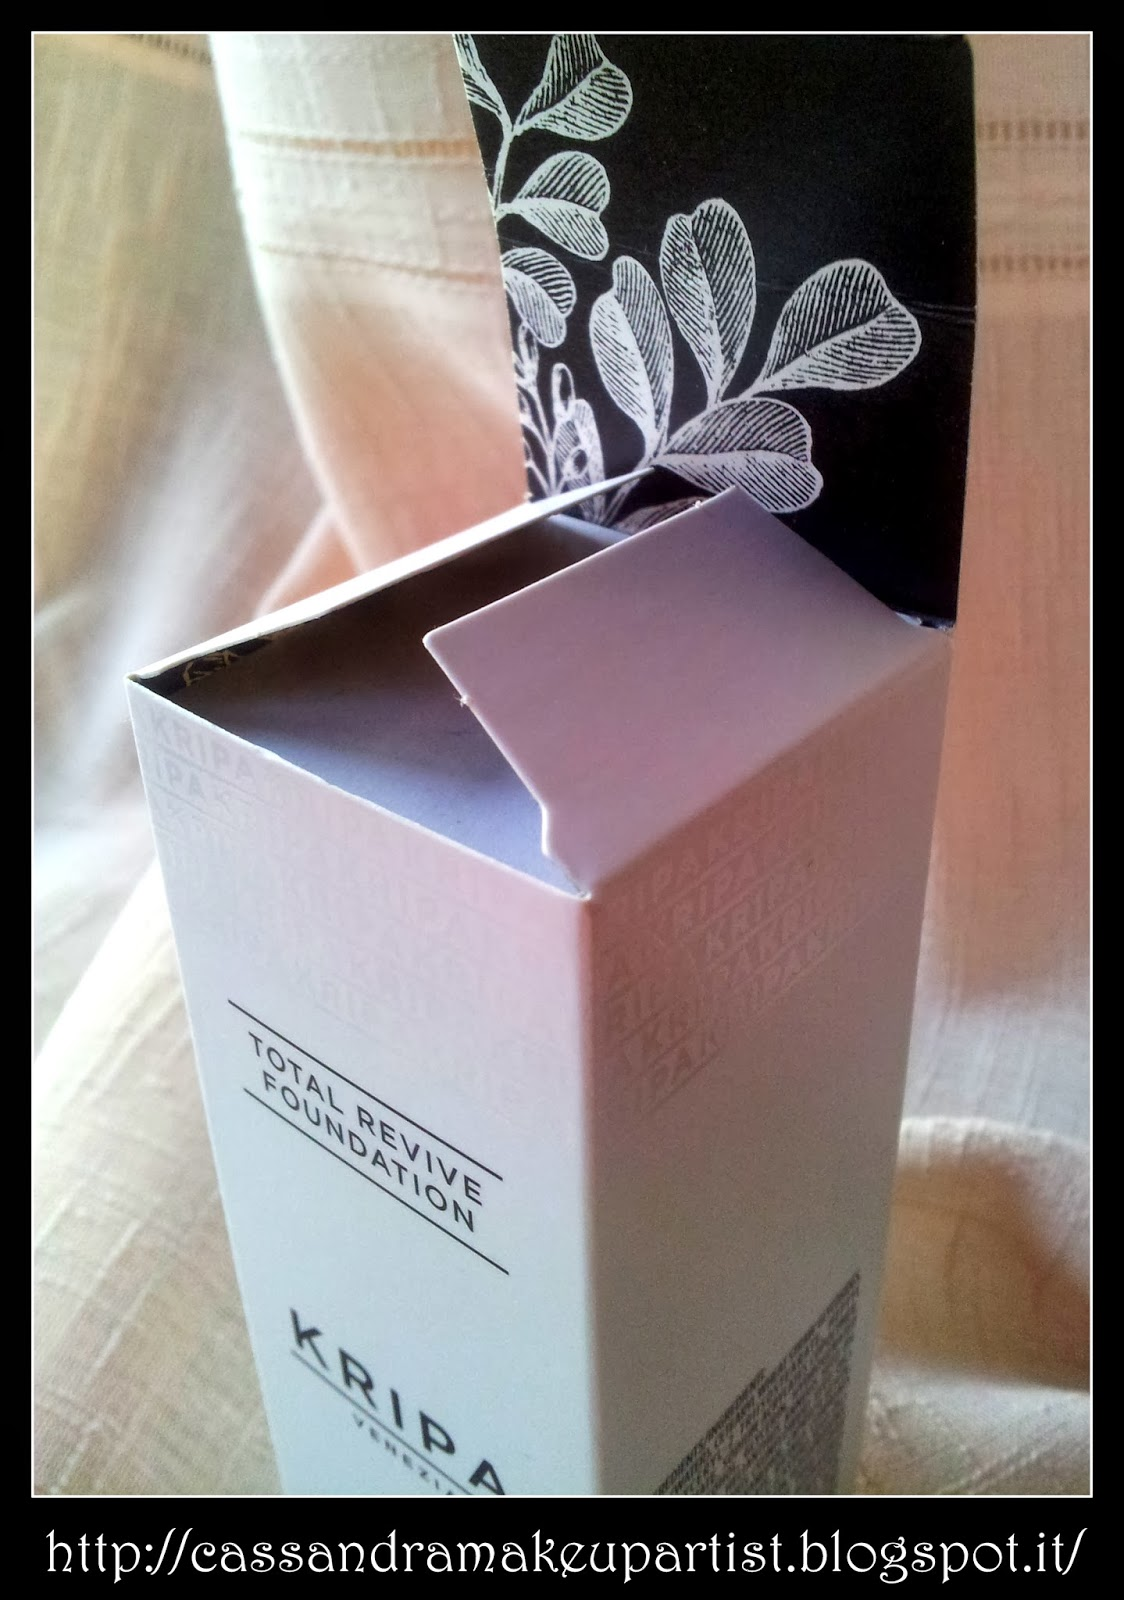 KRIPA - Total Revive Foundation - recensione - review - colore 30 Medium Beige - inci - prezzo - price - indredienti - indredients - swatch - texture - packaging